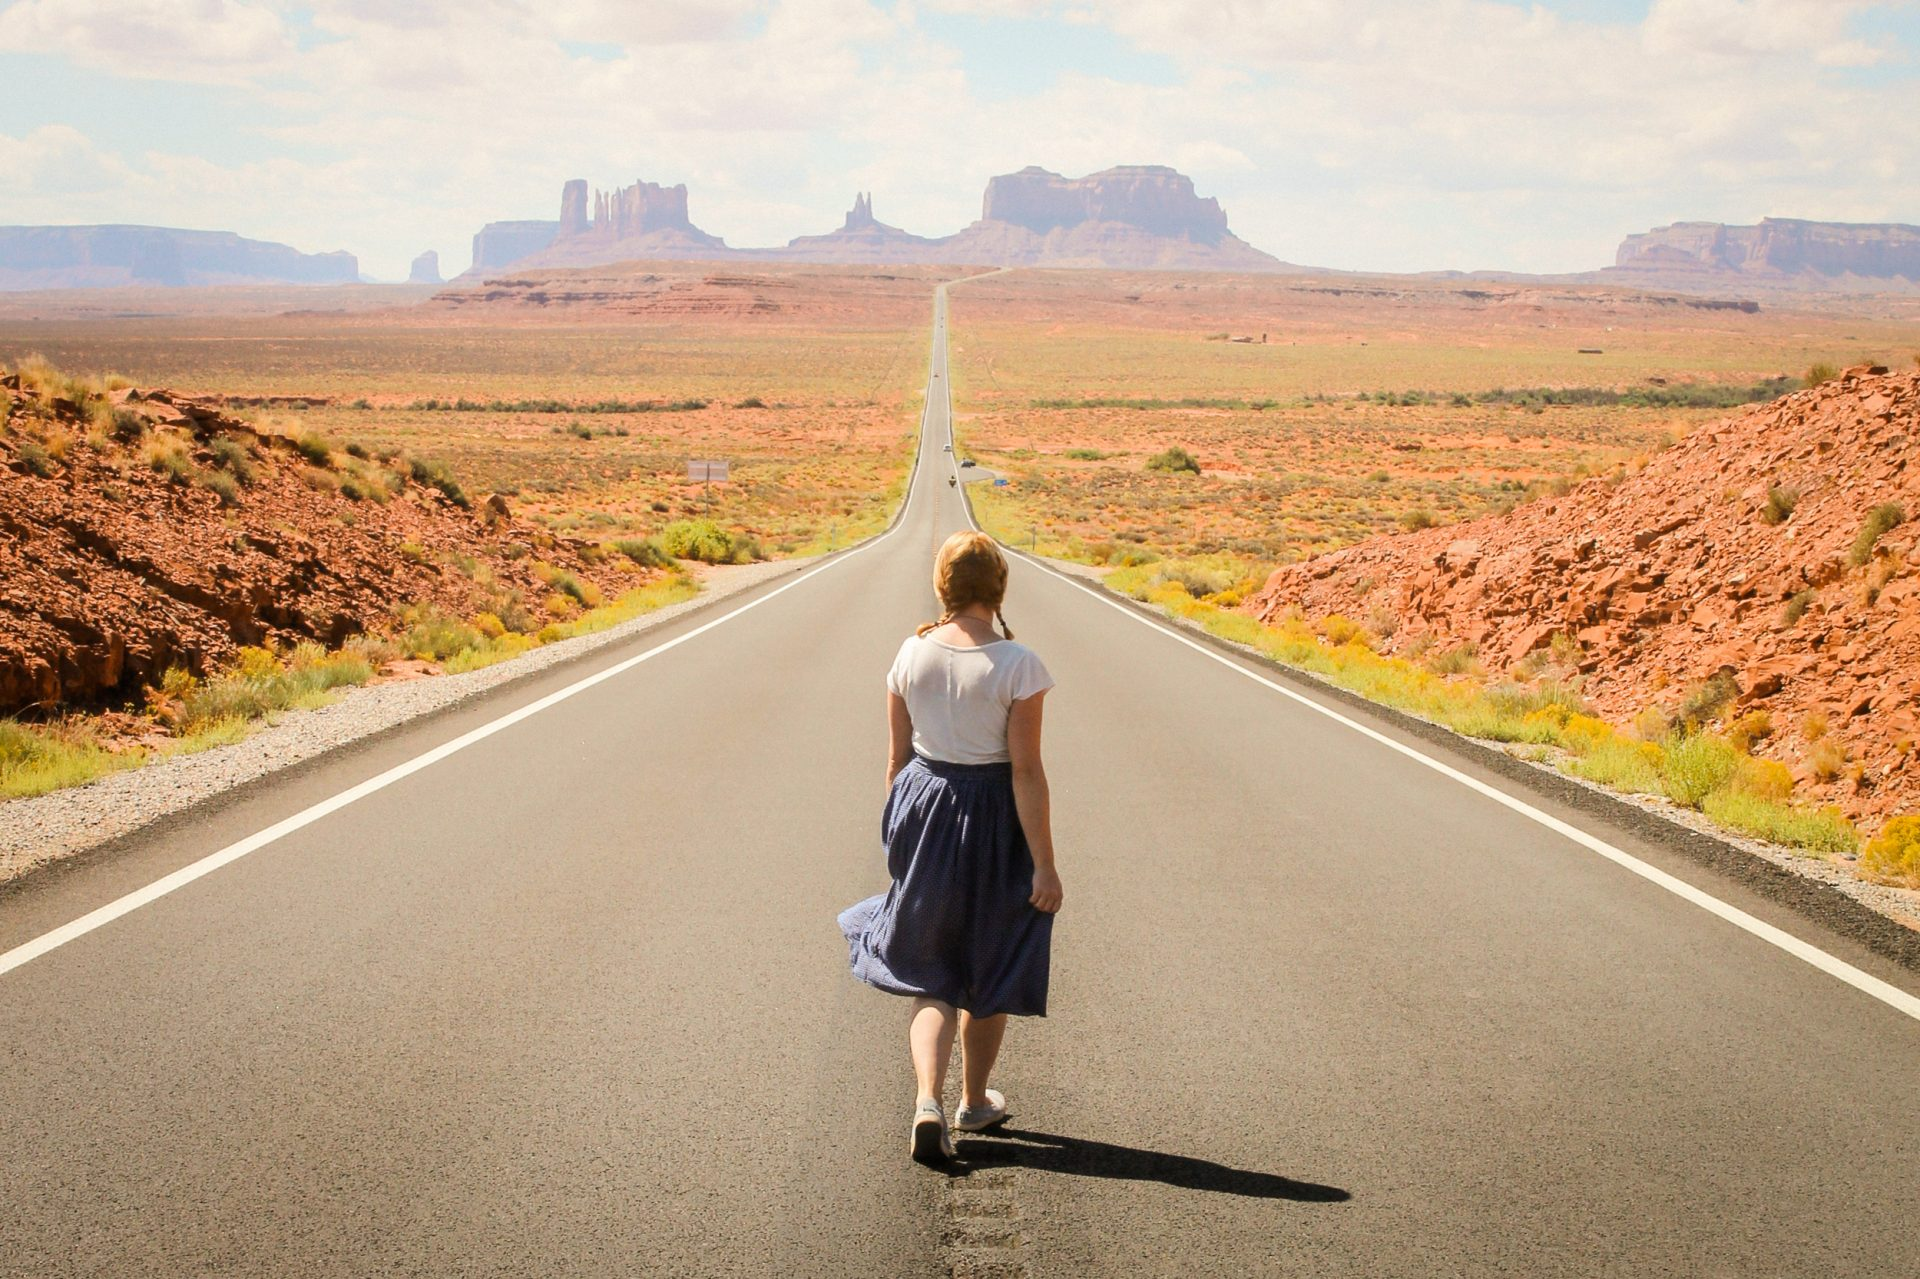 The road leading to Monument Valley in Utah, USA